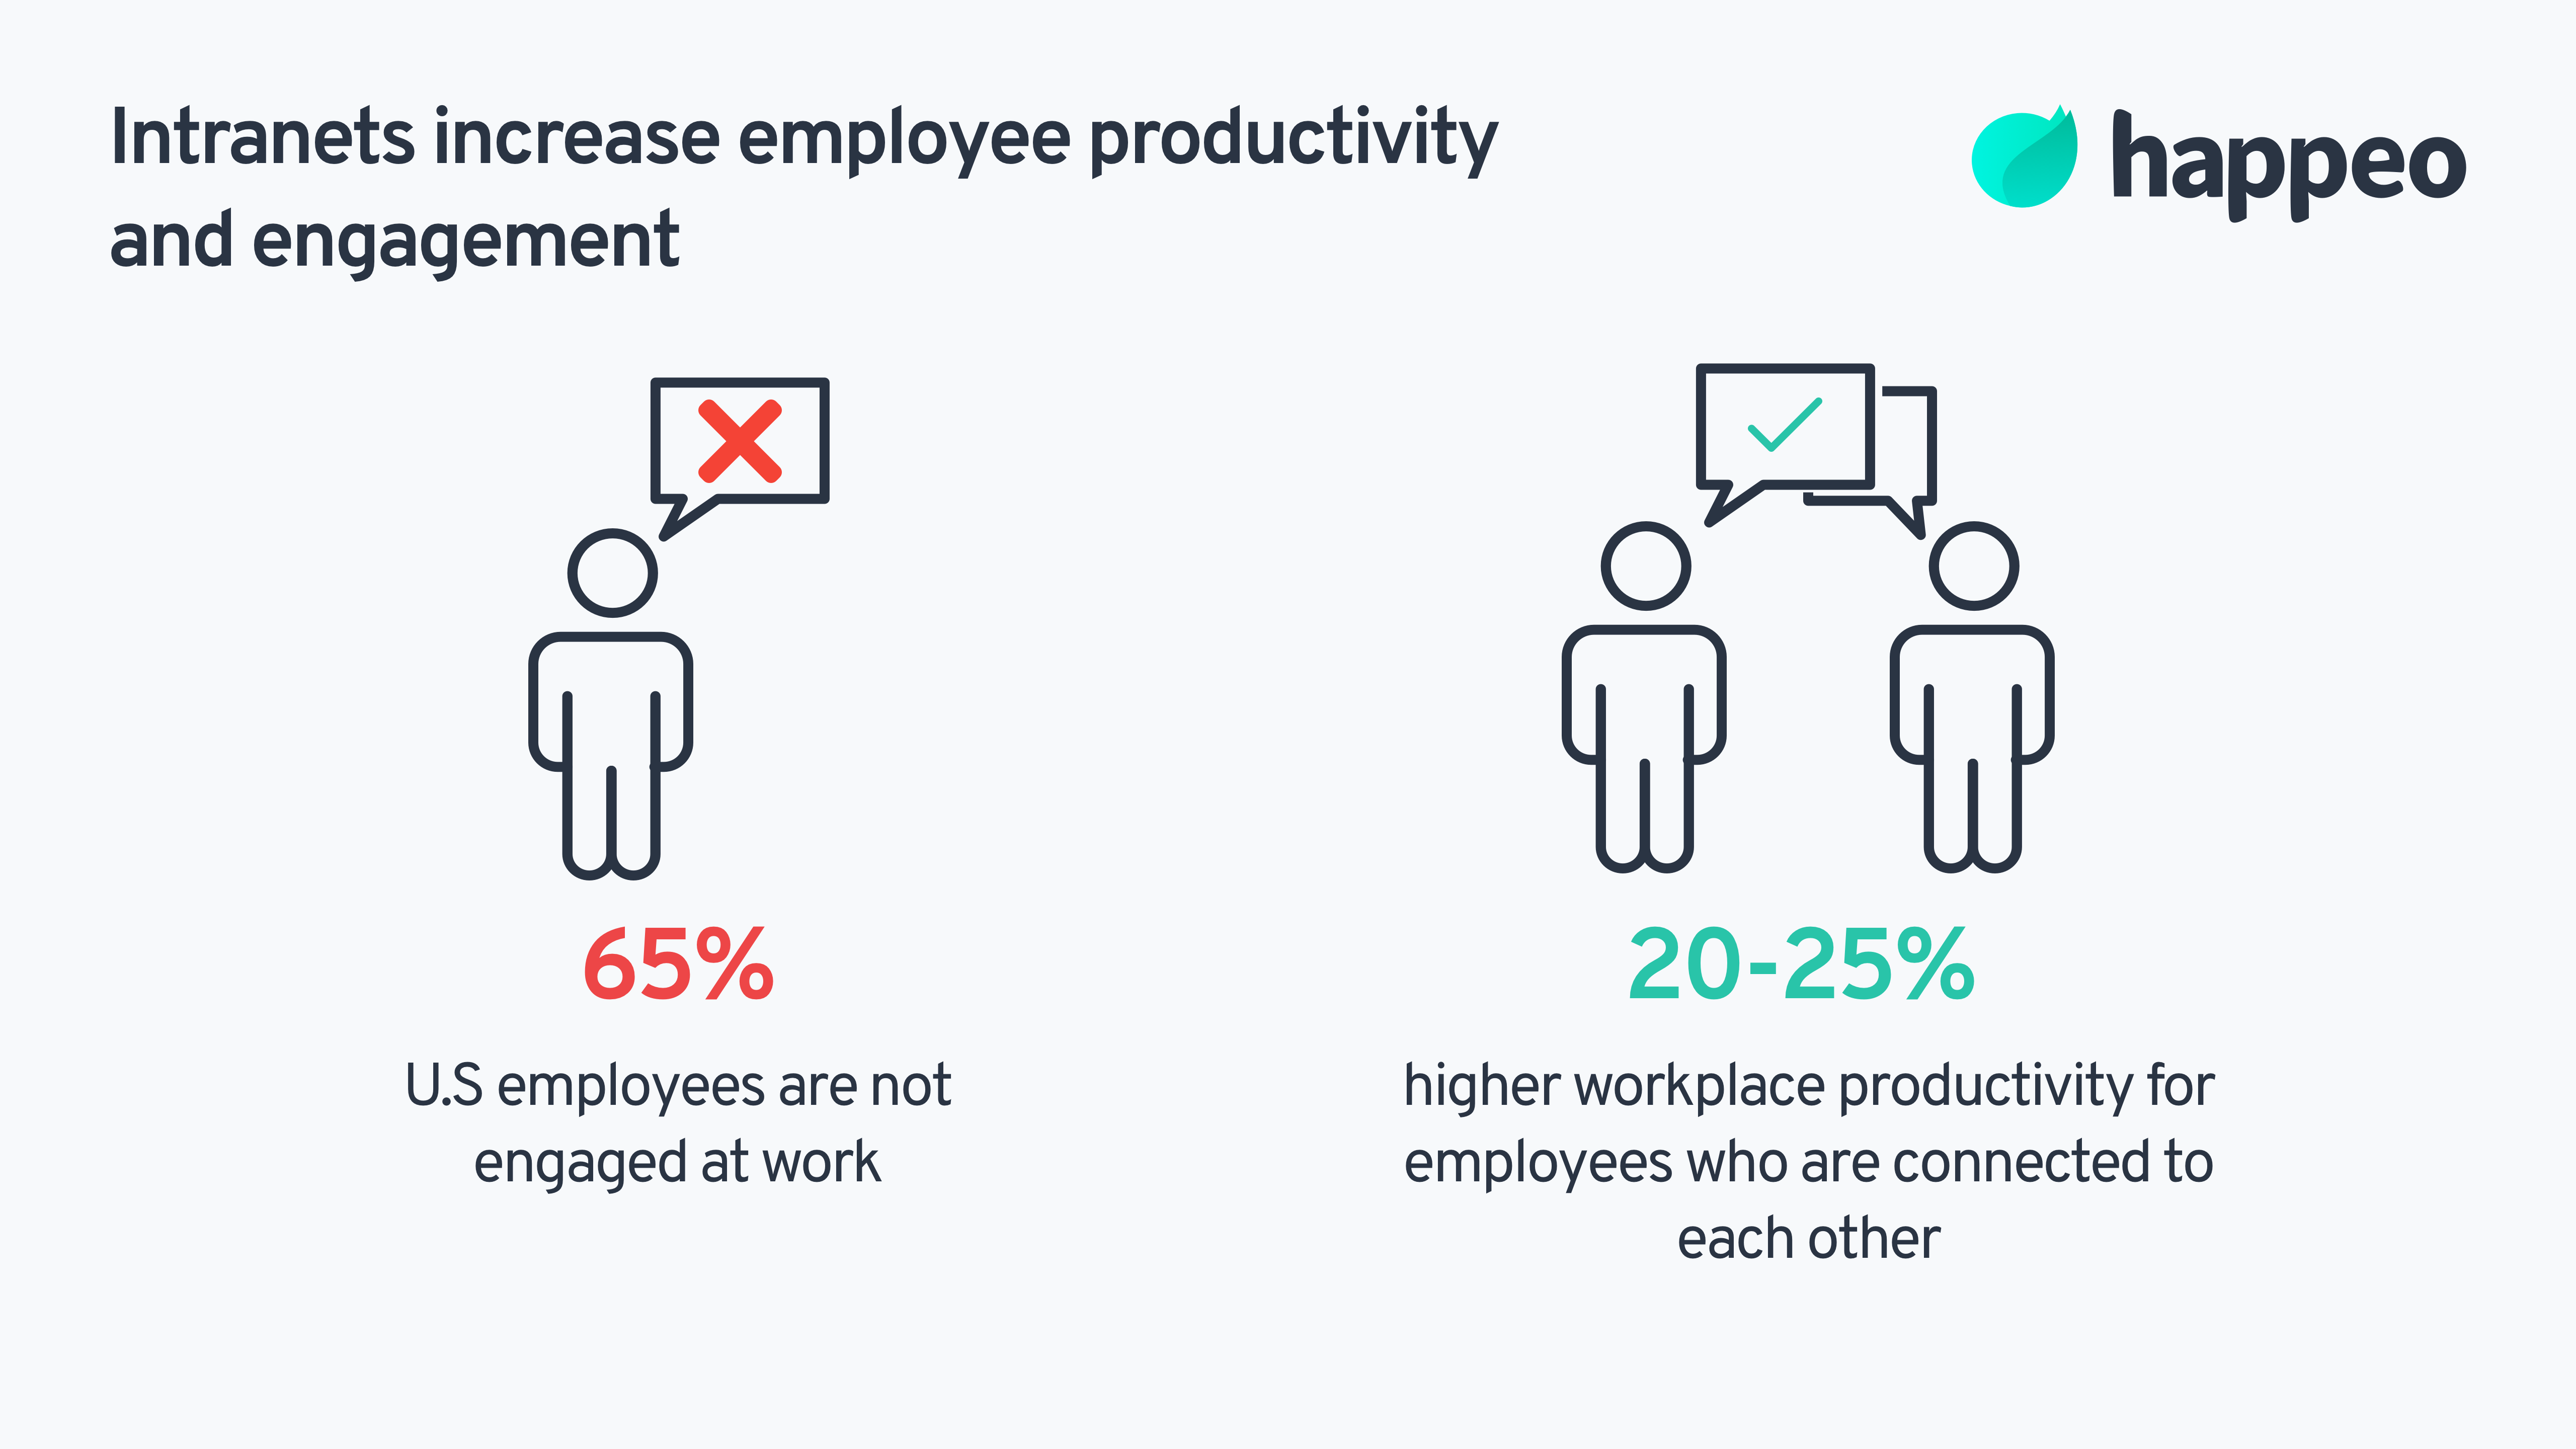 Intranets increase employee productivity and engagement